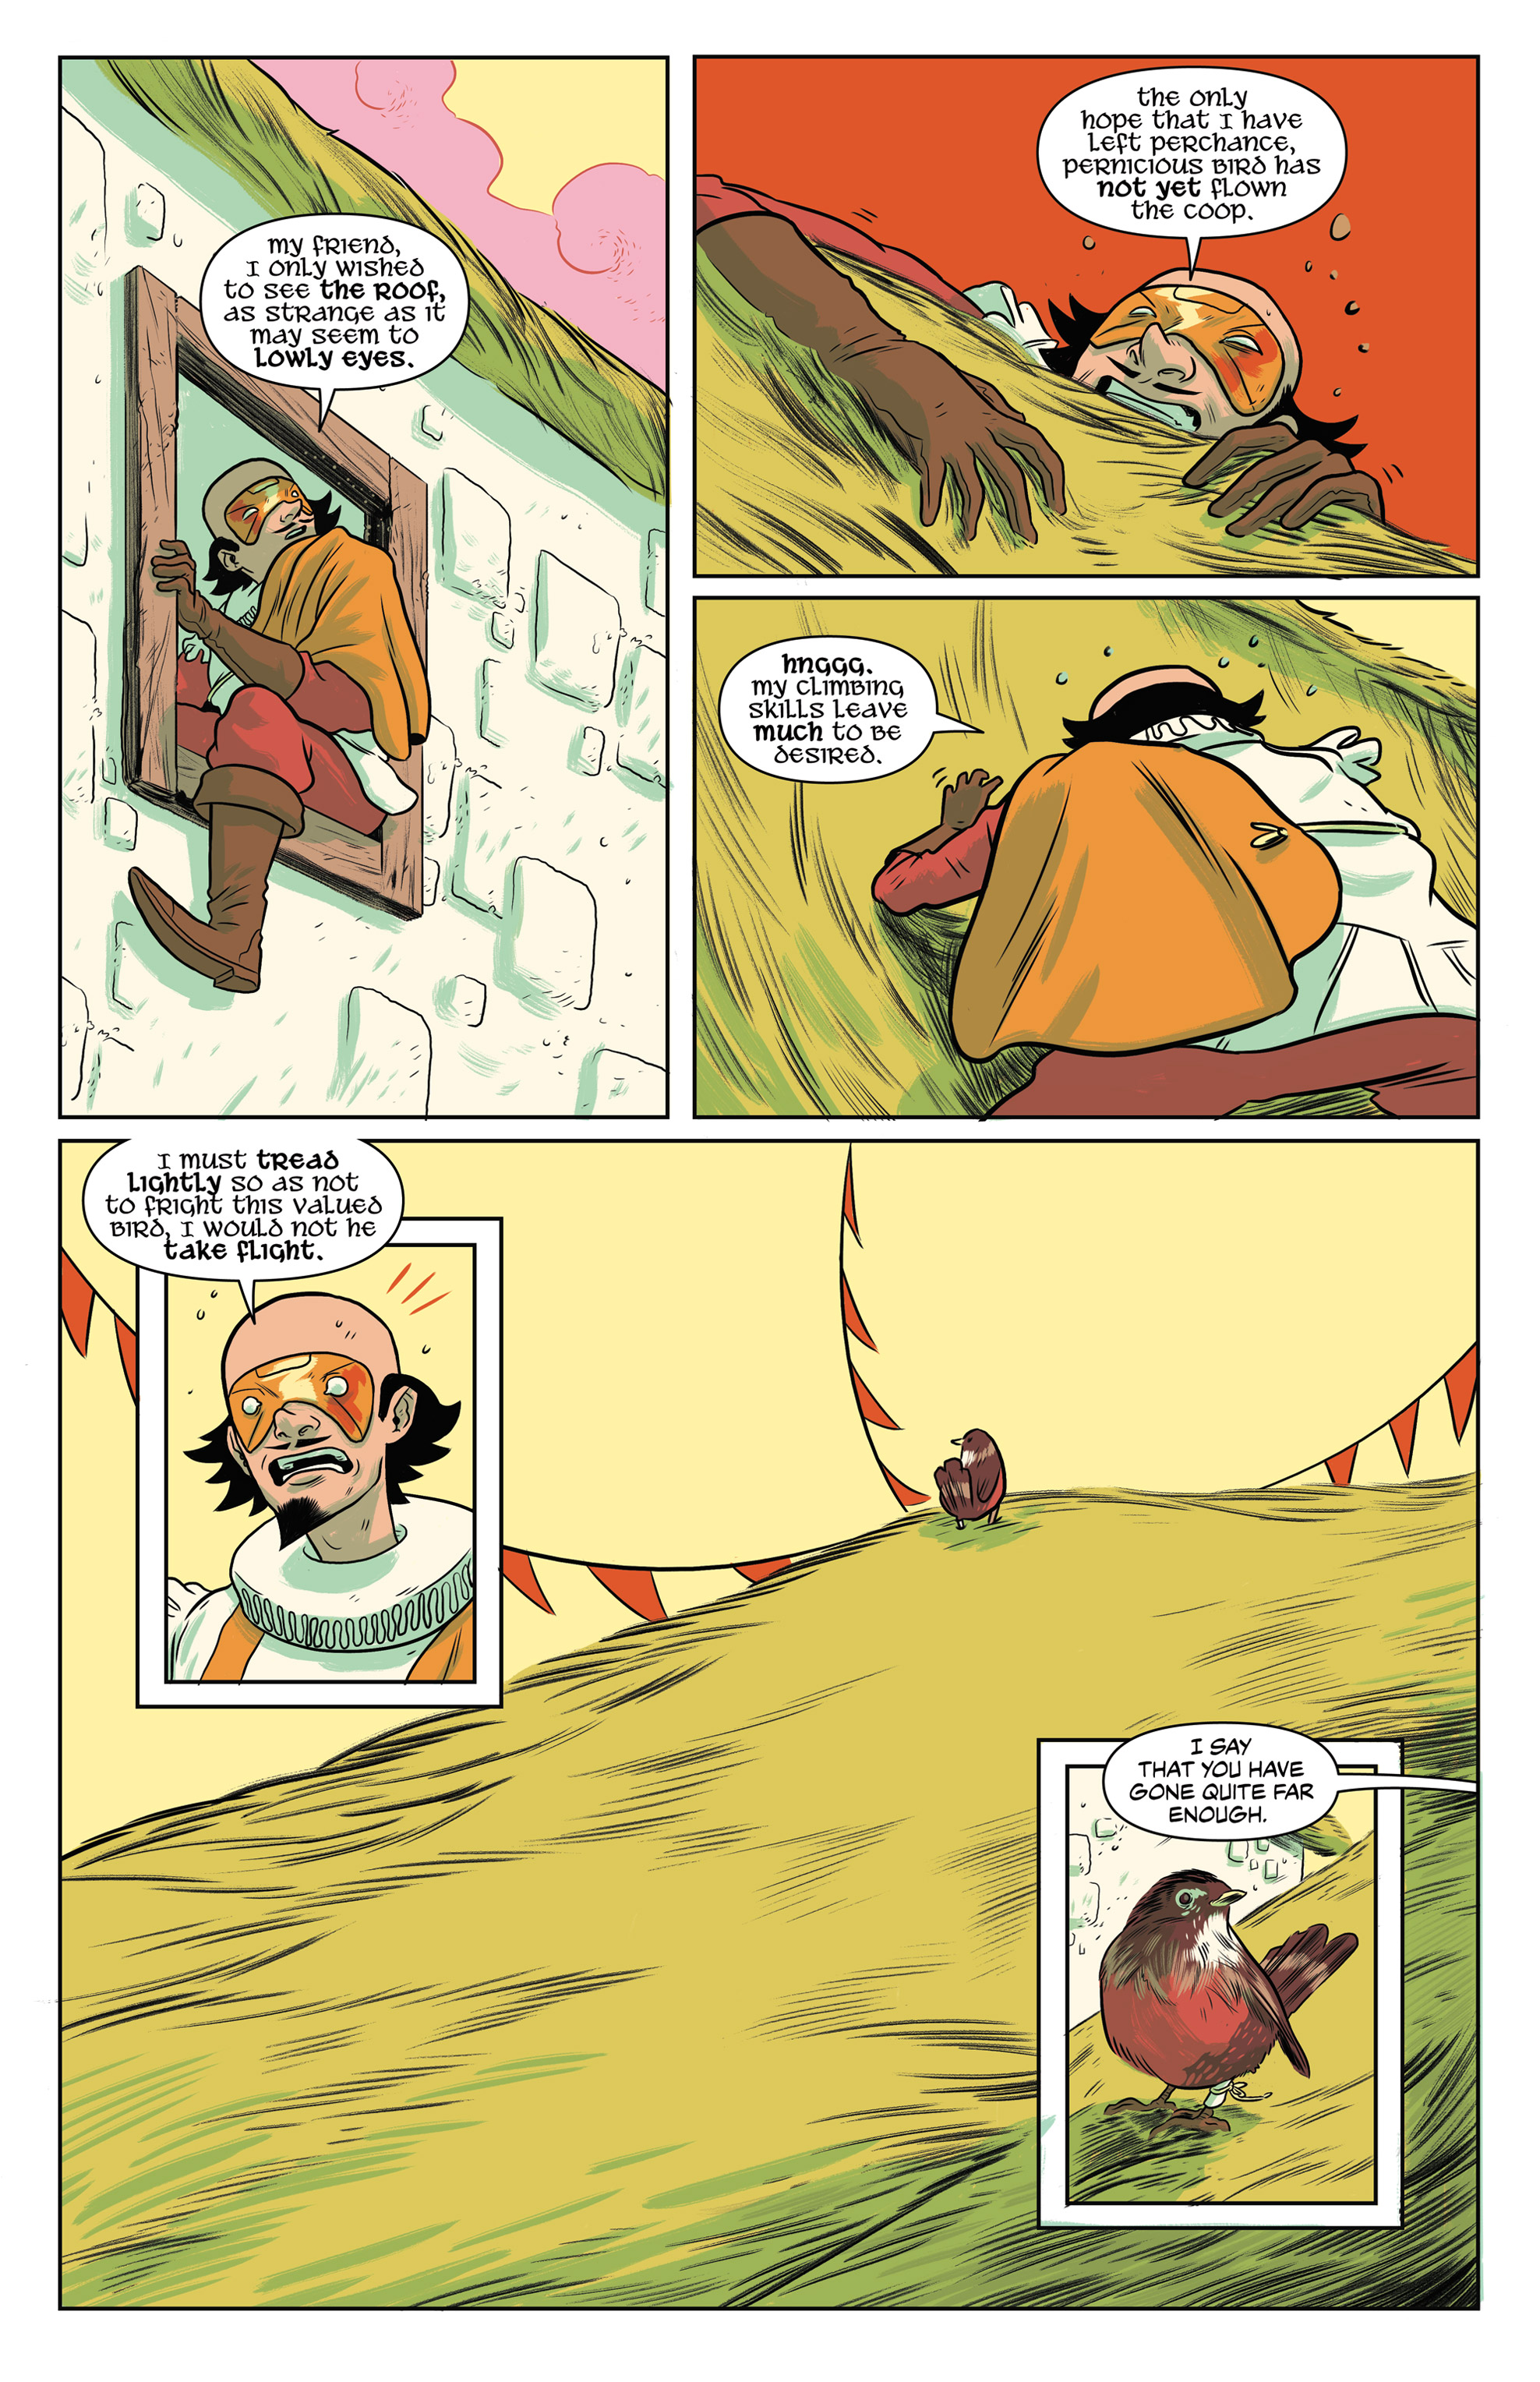 NO HOLDS BARD #1 page 12